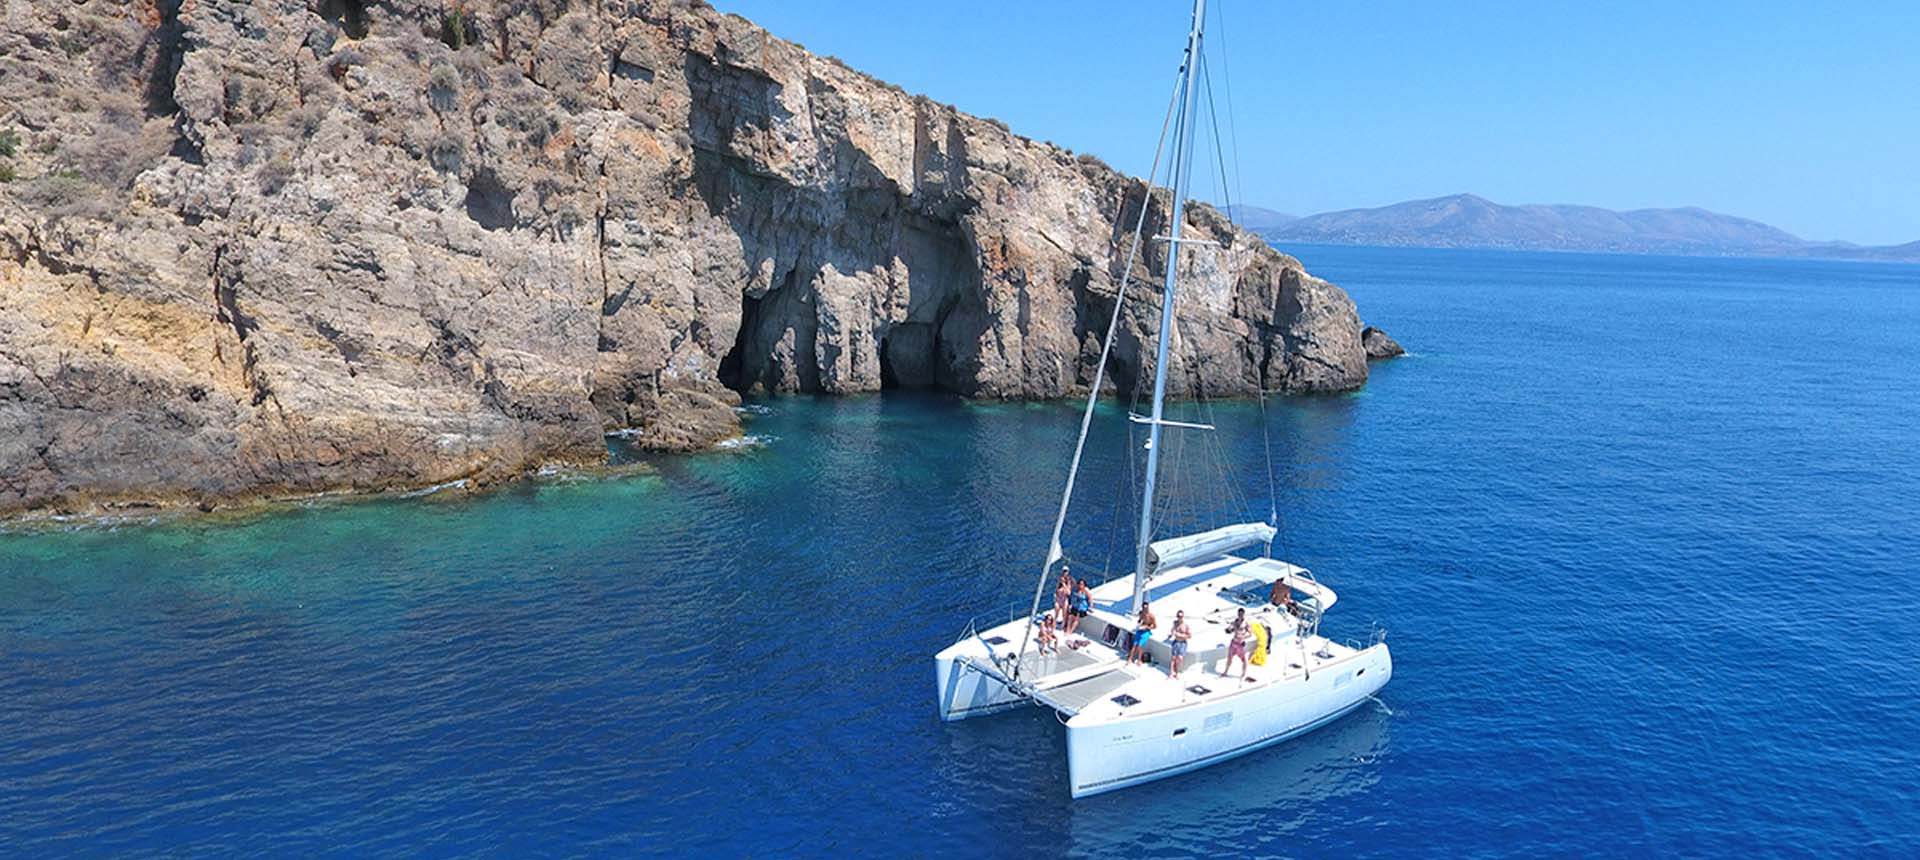 Athens Riviera Semi-Private Cruise (morning or sunset)